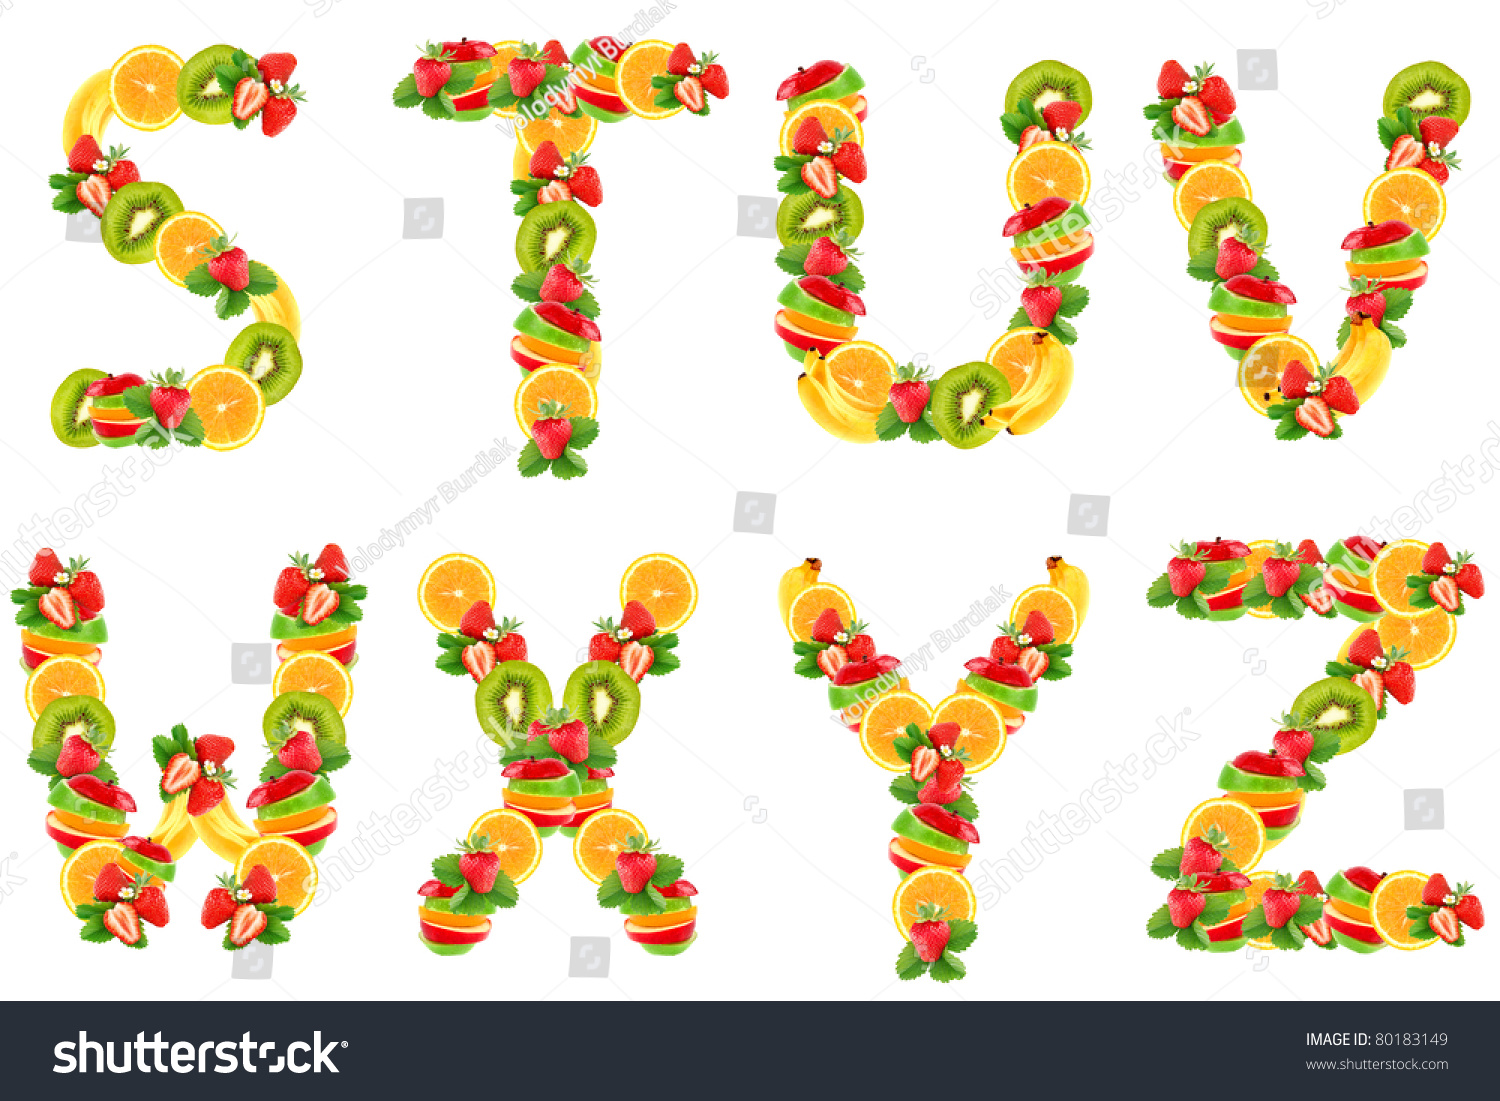 Letters Alphabet From Fruit Stock Photo 80183149 ...